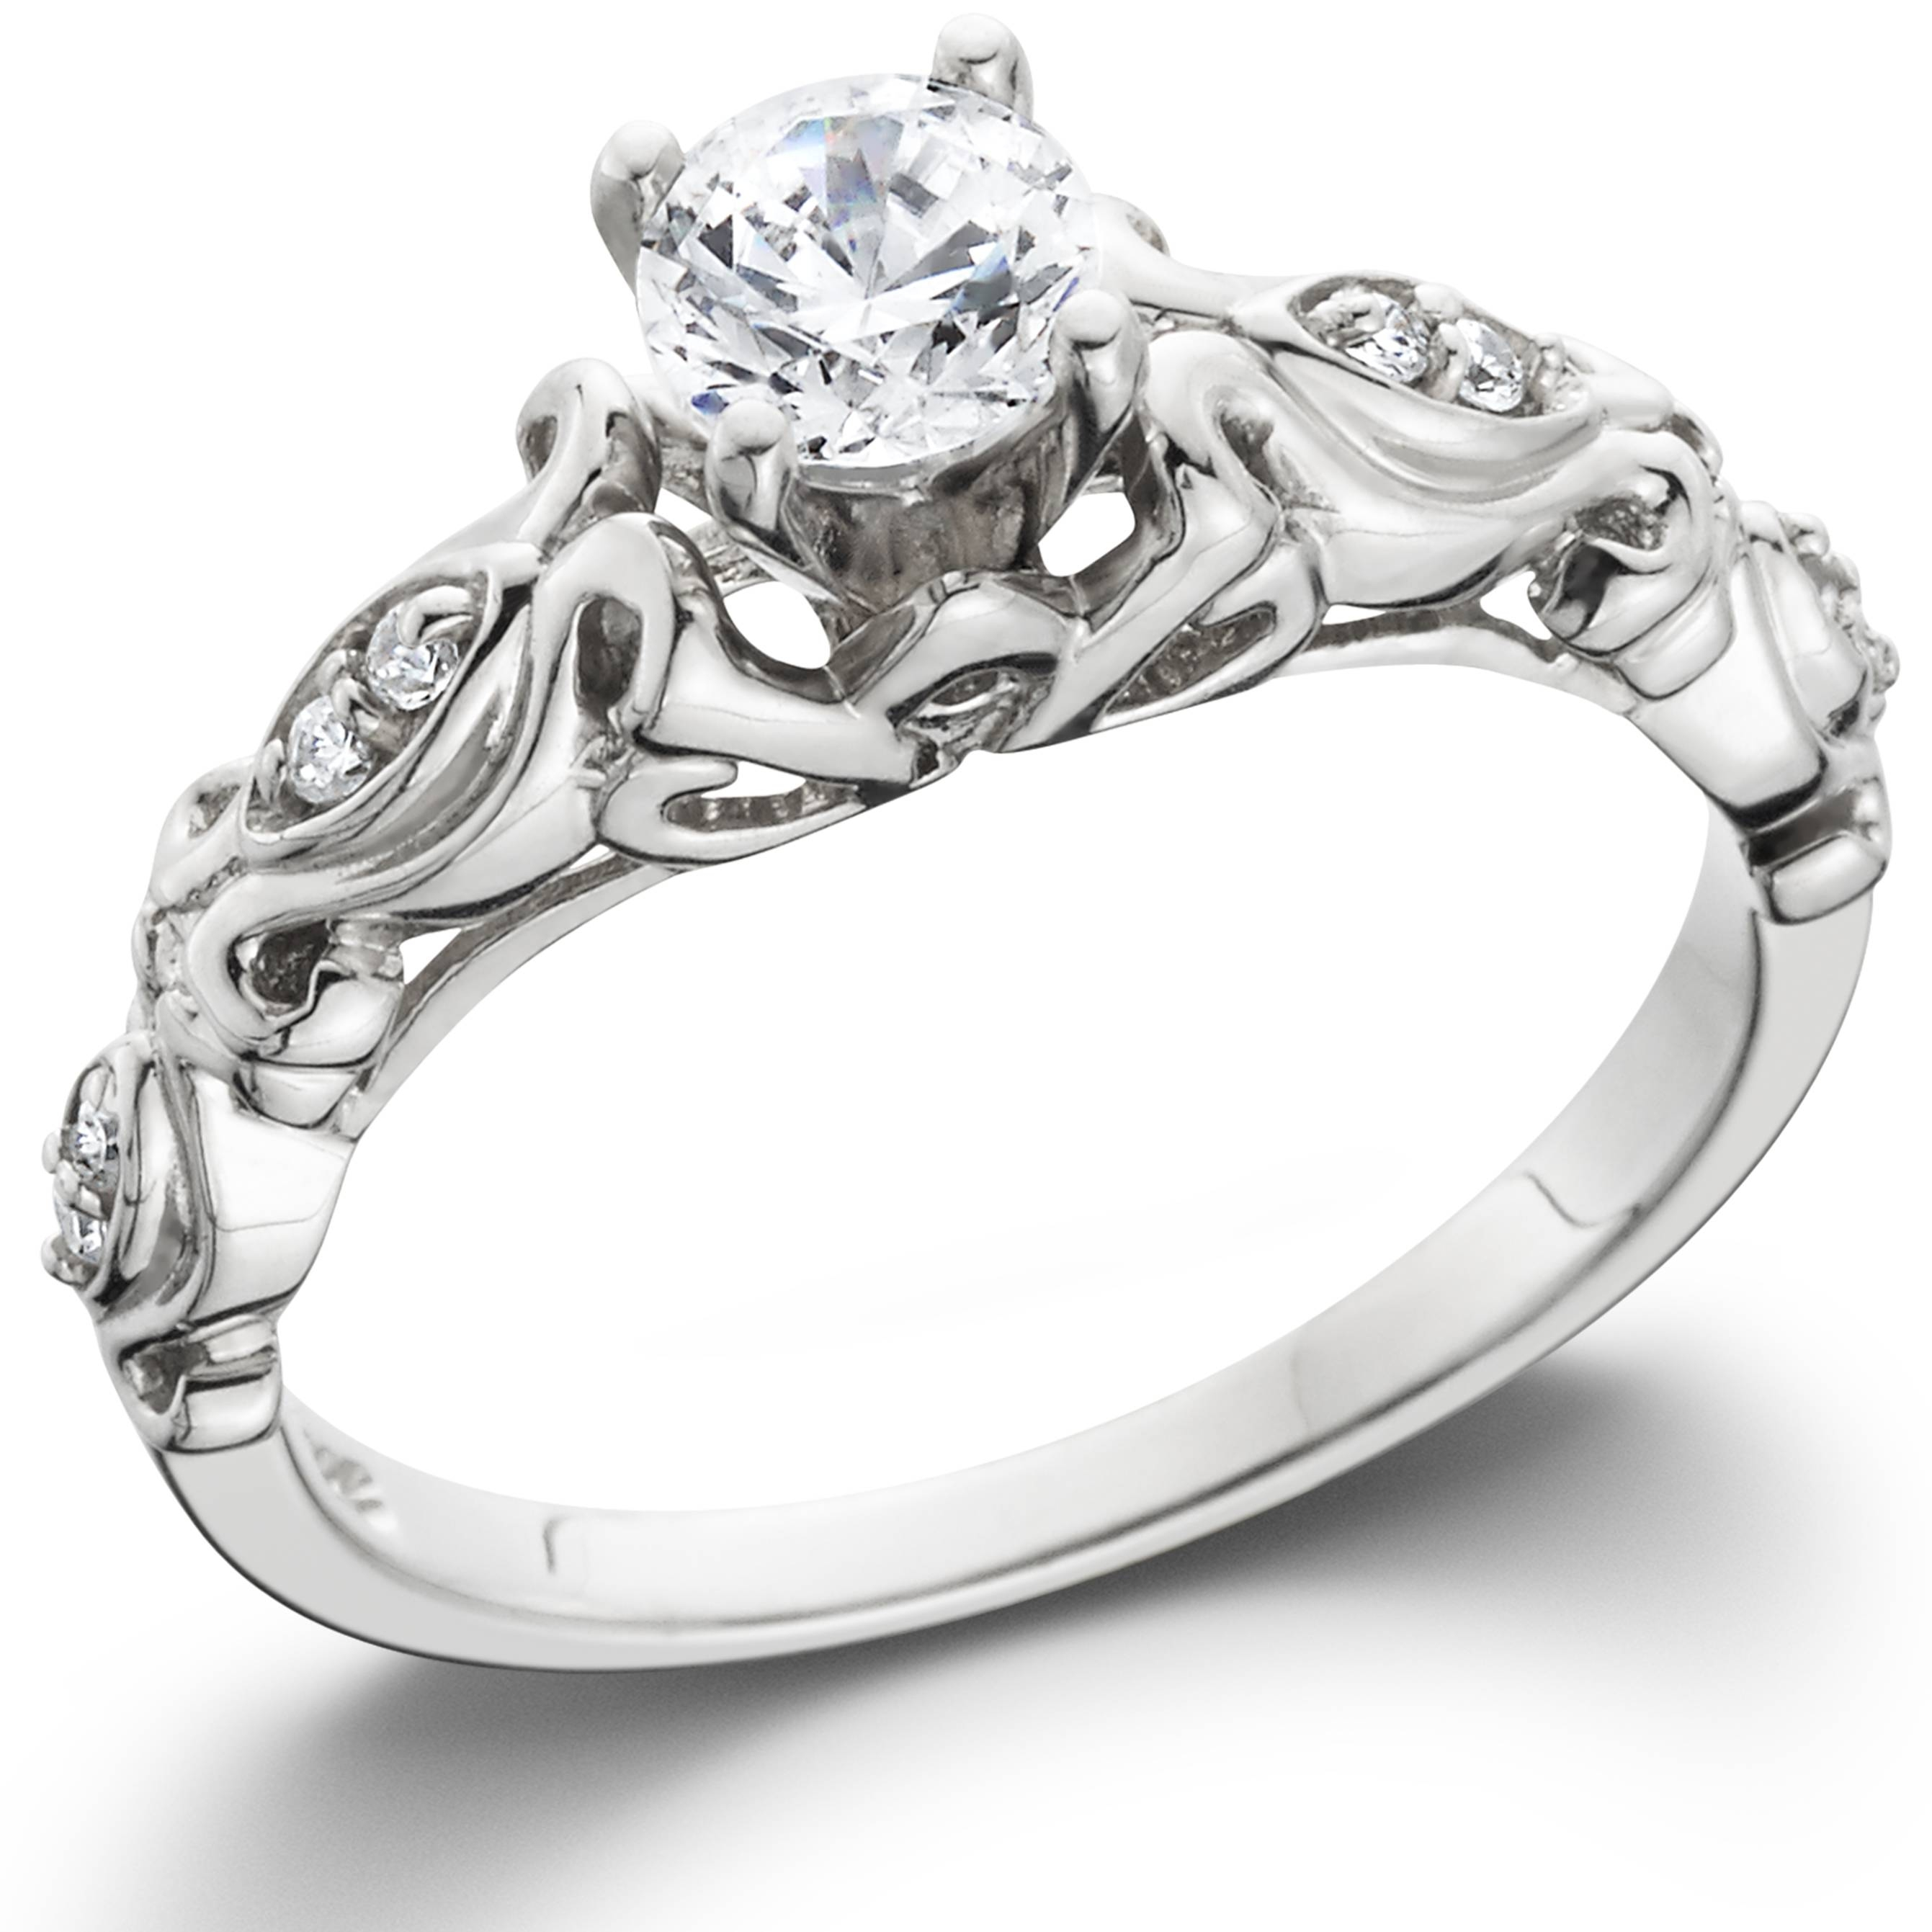 engagement product rings home wedding face jewellery p fine diamond platinum page solitaire